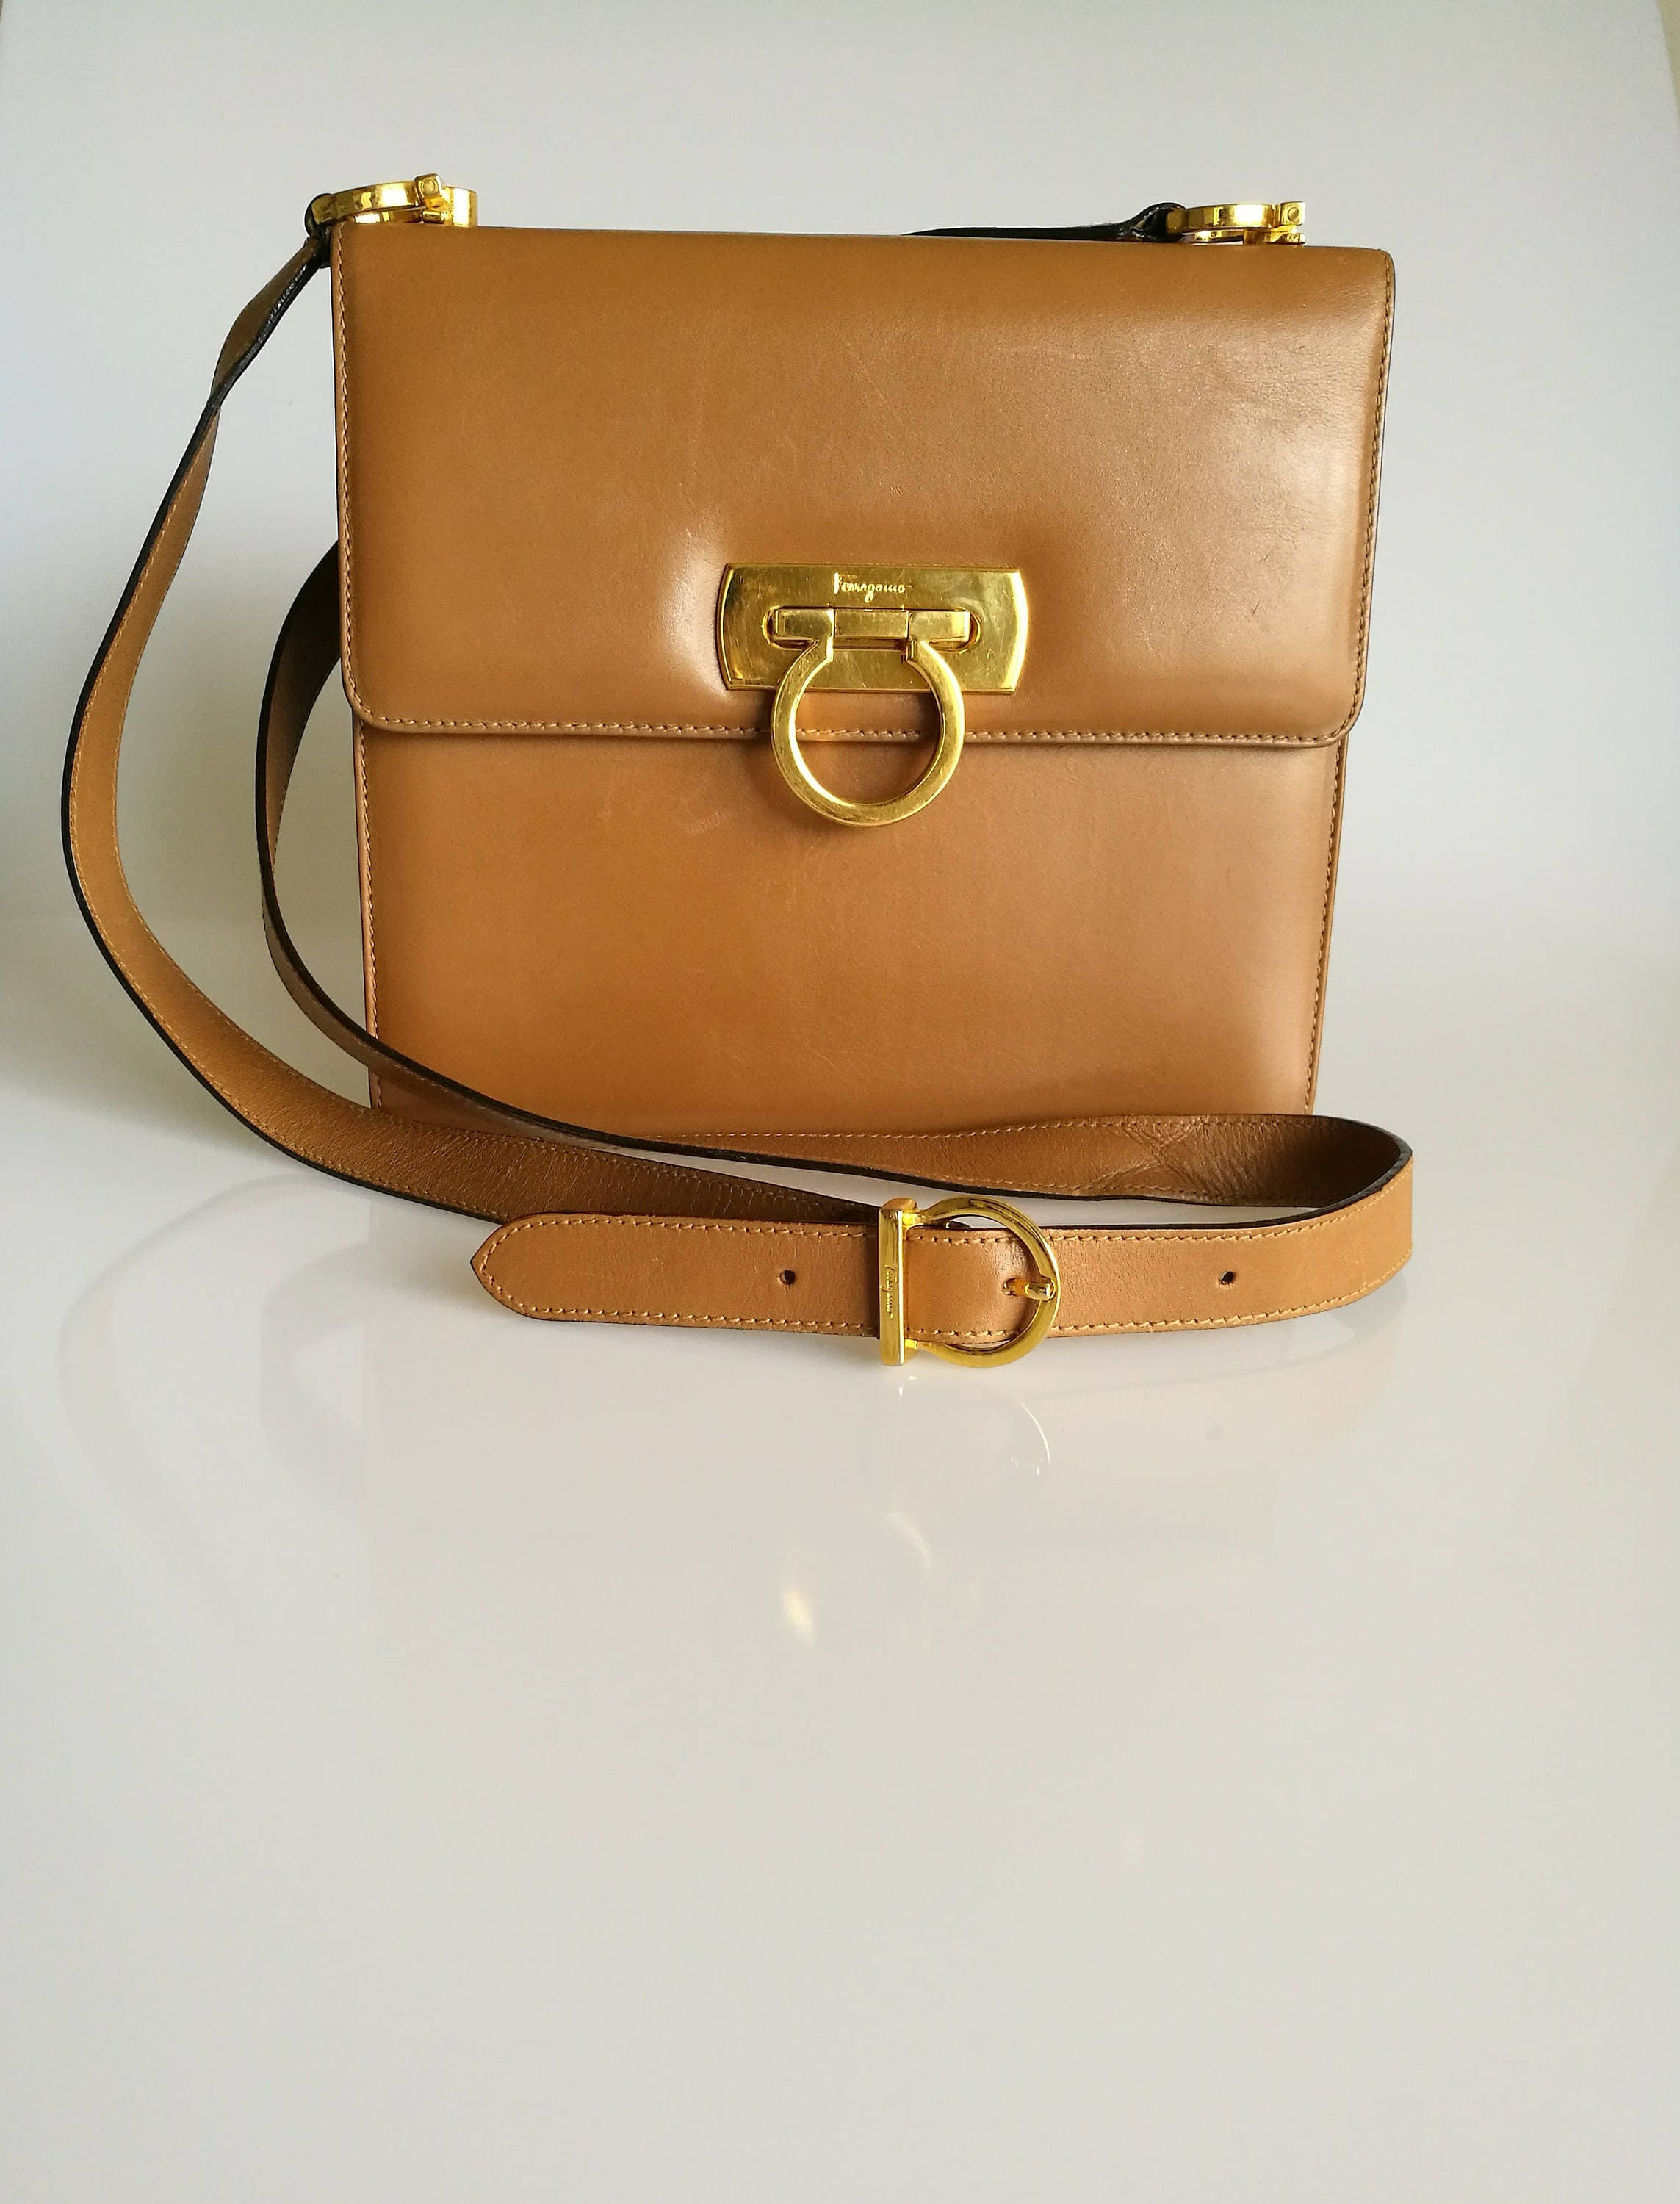 Salvatore Ferragamo Vintage Gancini Mini Shoulder Messenger Leather Bag Brown  Tan Colour